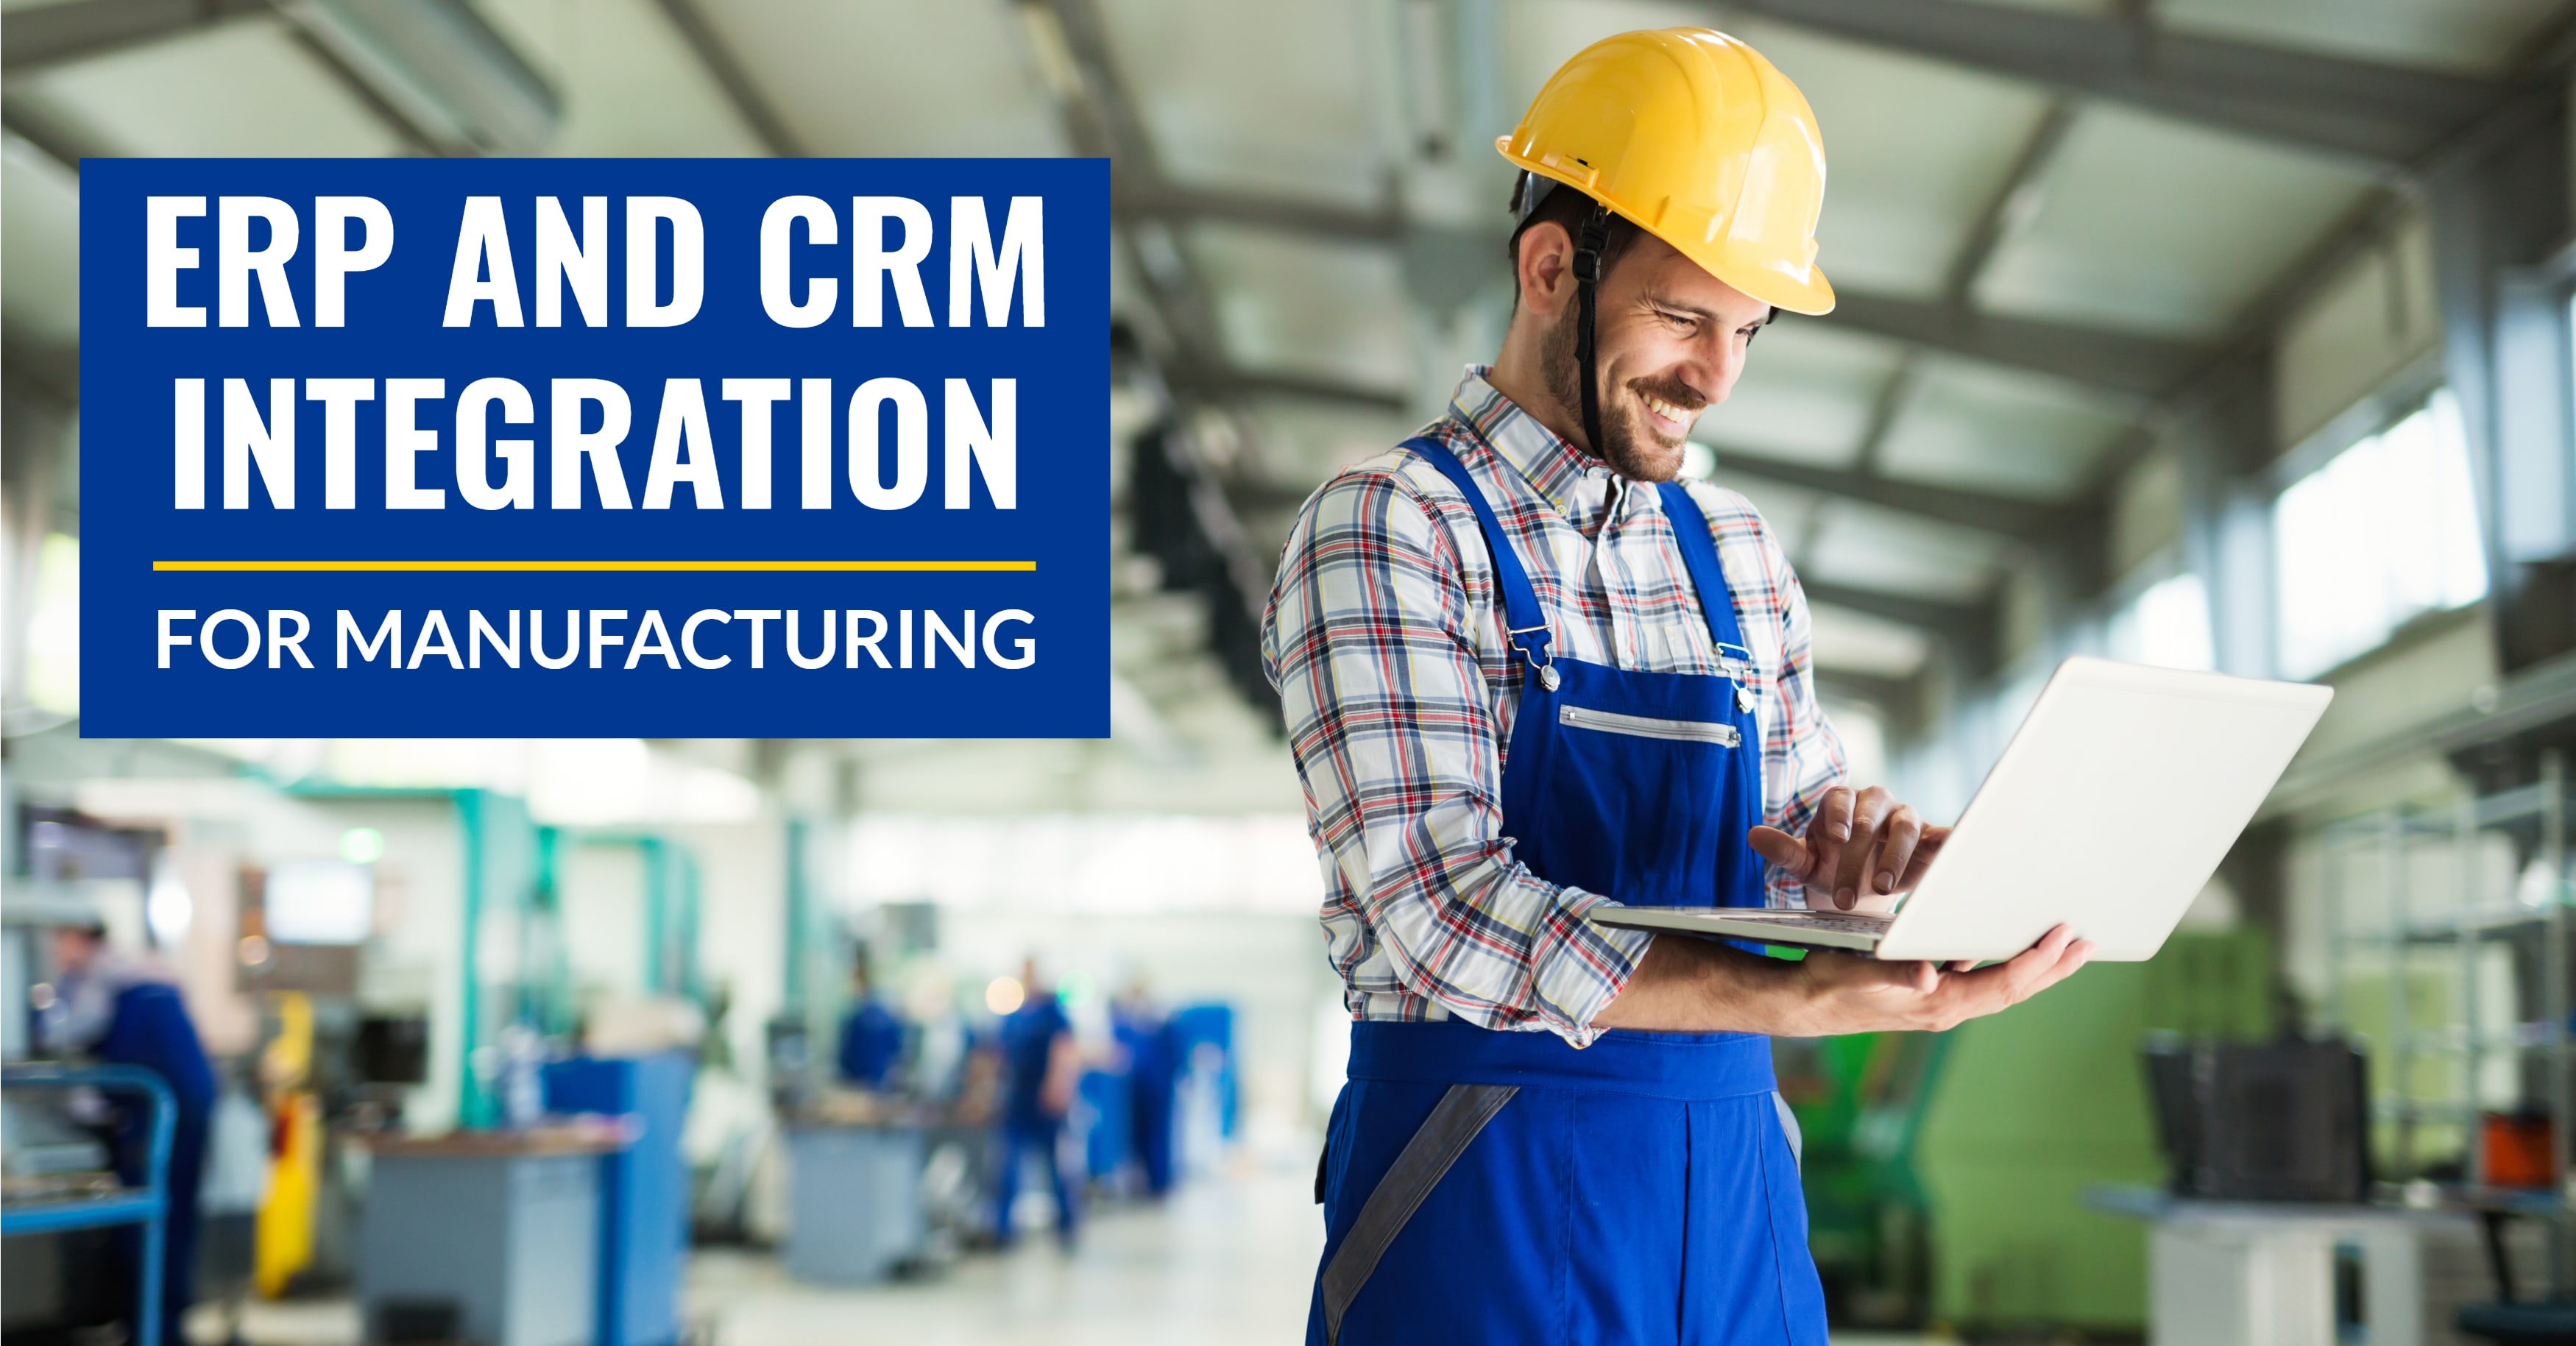 Why Do Manufacturers Need CRM and ERP Integration?